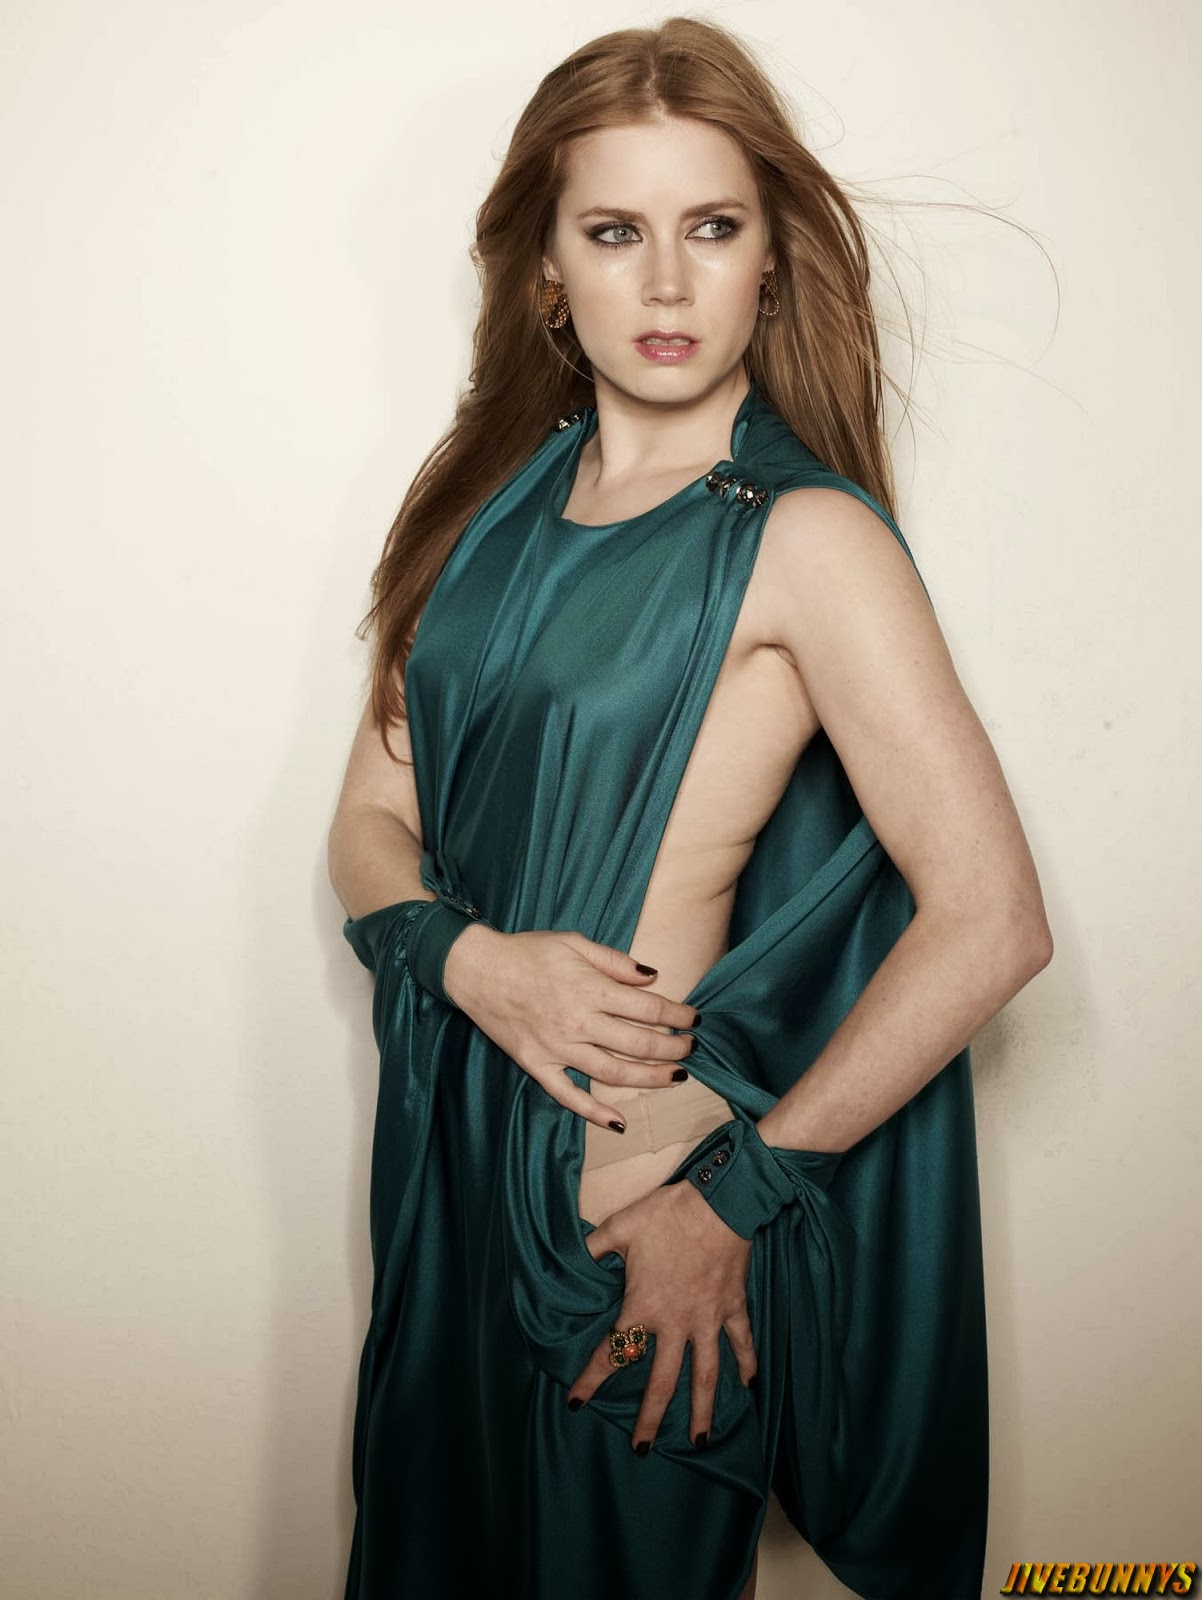 Jivebunnys Female Celebrity Picture Gallery: Amy Adams ... Amy Adams